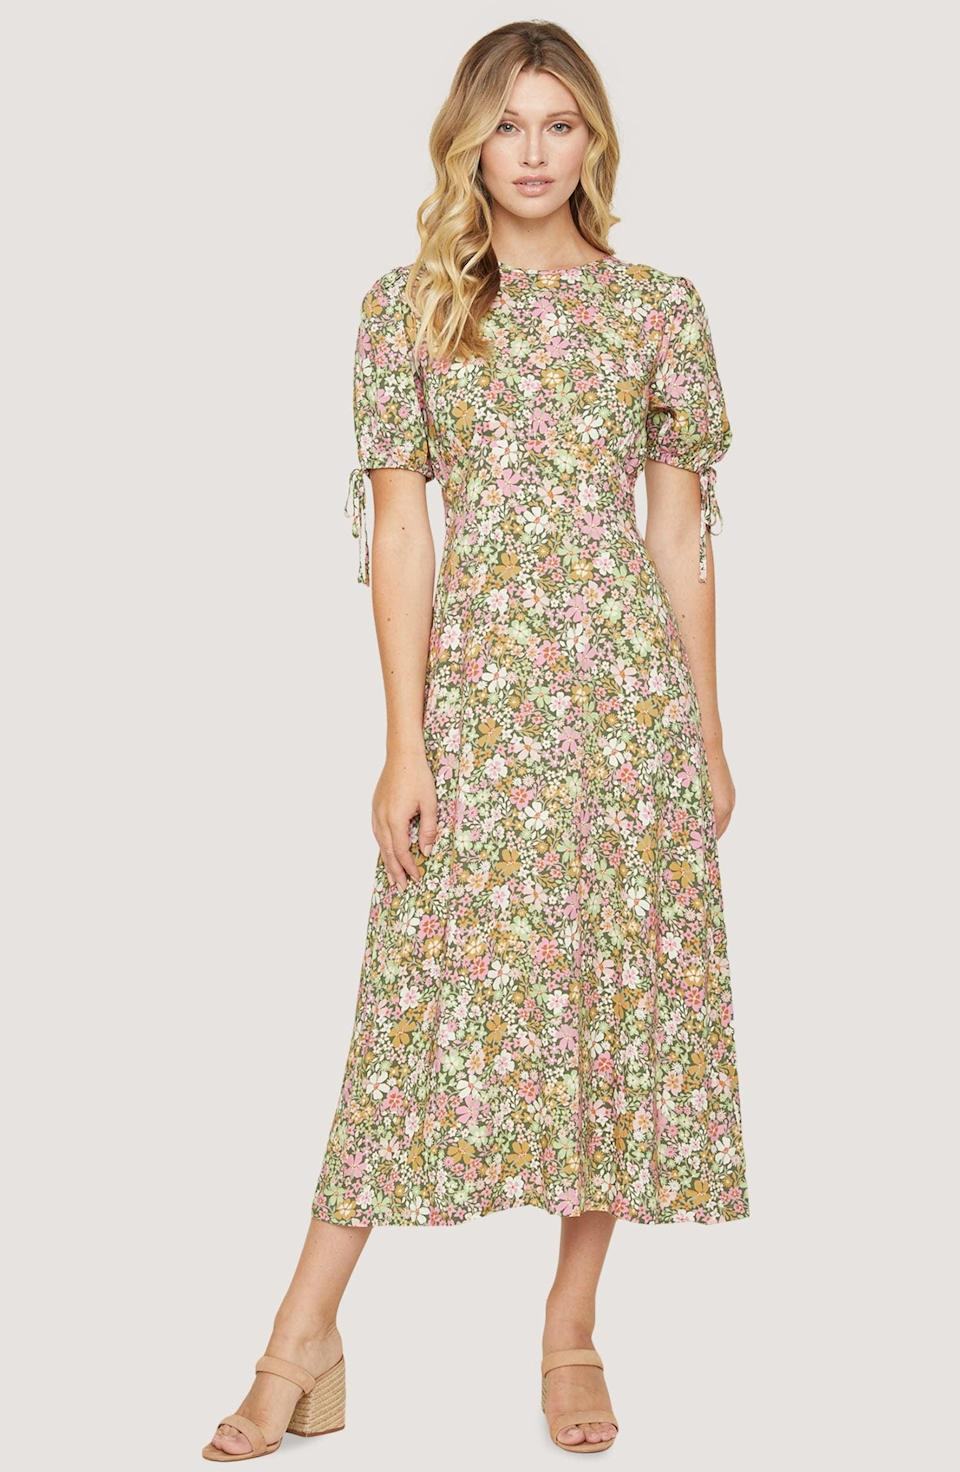 <p>This <span>Lost + Wander Getaway Island Floral Midi Dress</span> ($89, originally $118) is so romantic and sweet.</p>